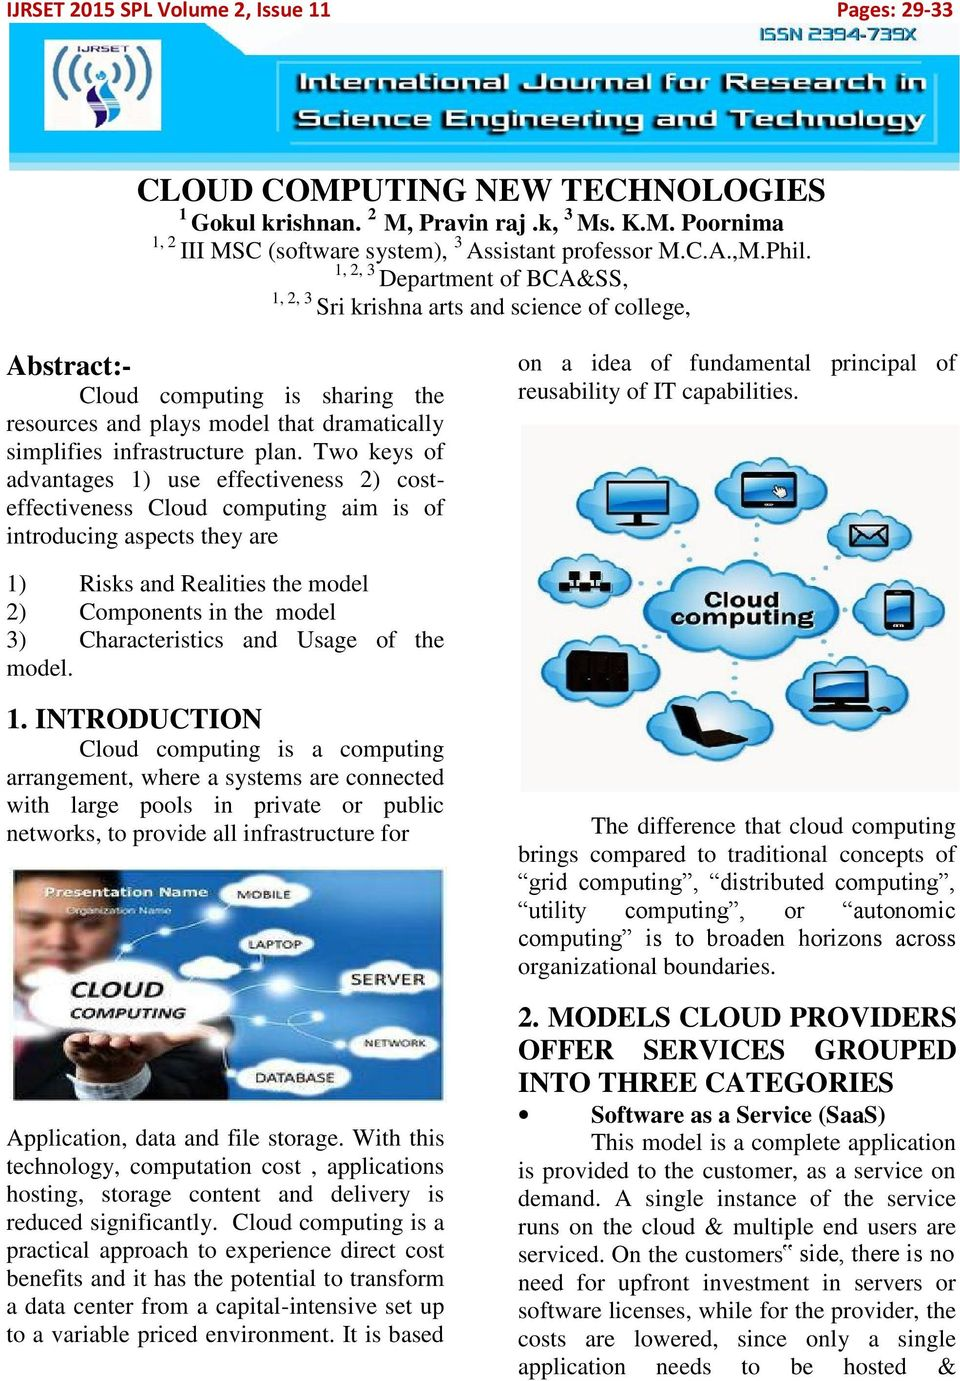 Two keys of advantages 1) use effectiveness 2) costeffectiveness Cloud computing aim is of introducing aspects they are on a idea of fundamental principal of reusability of IT capabilities.